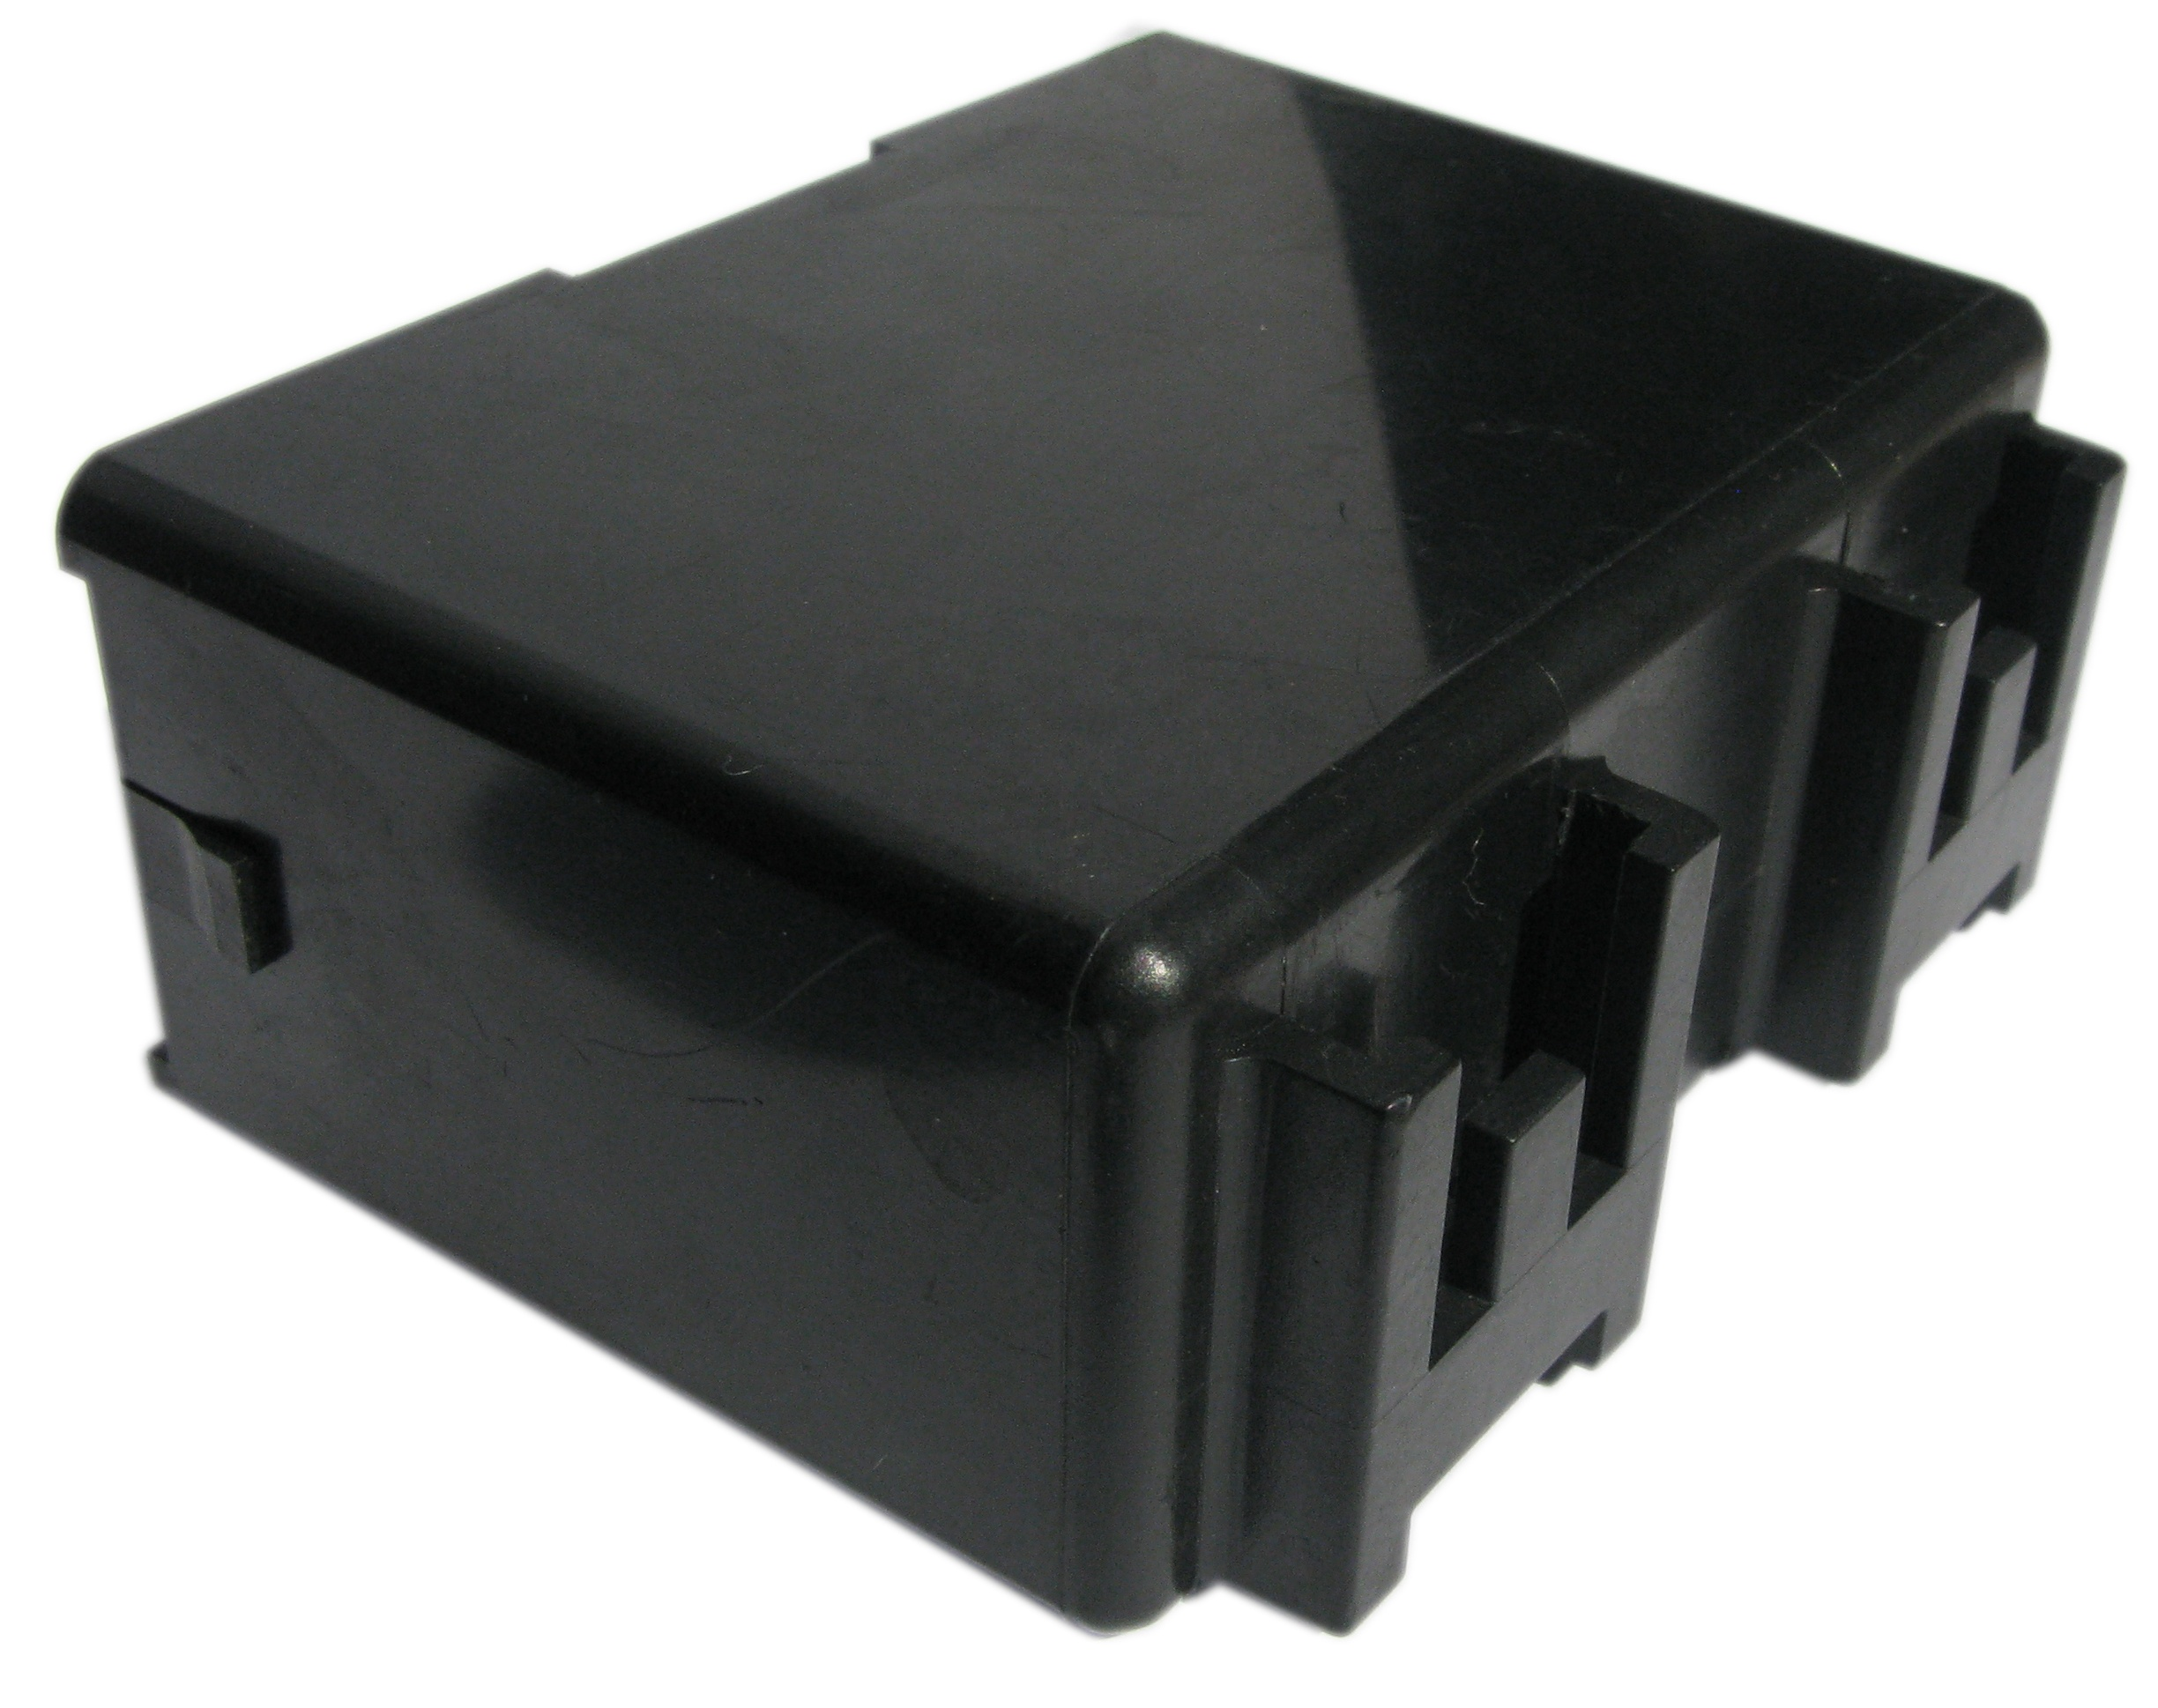 Mobil Flasher Controller Housing